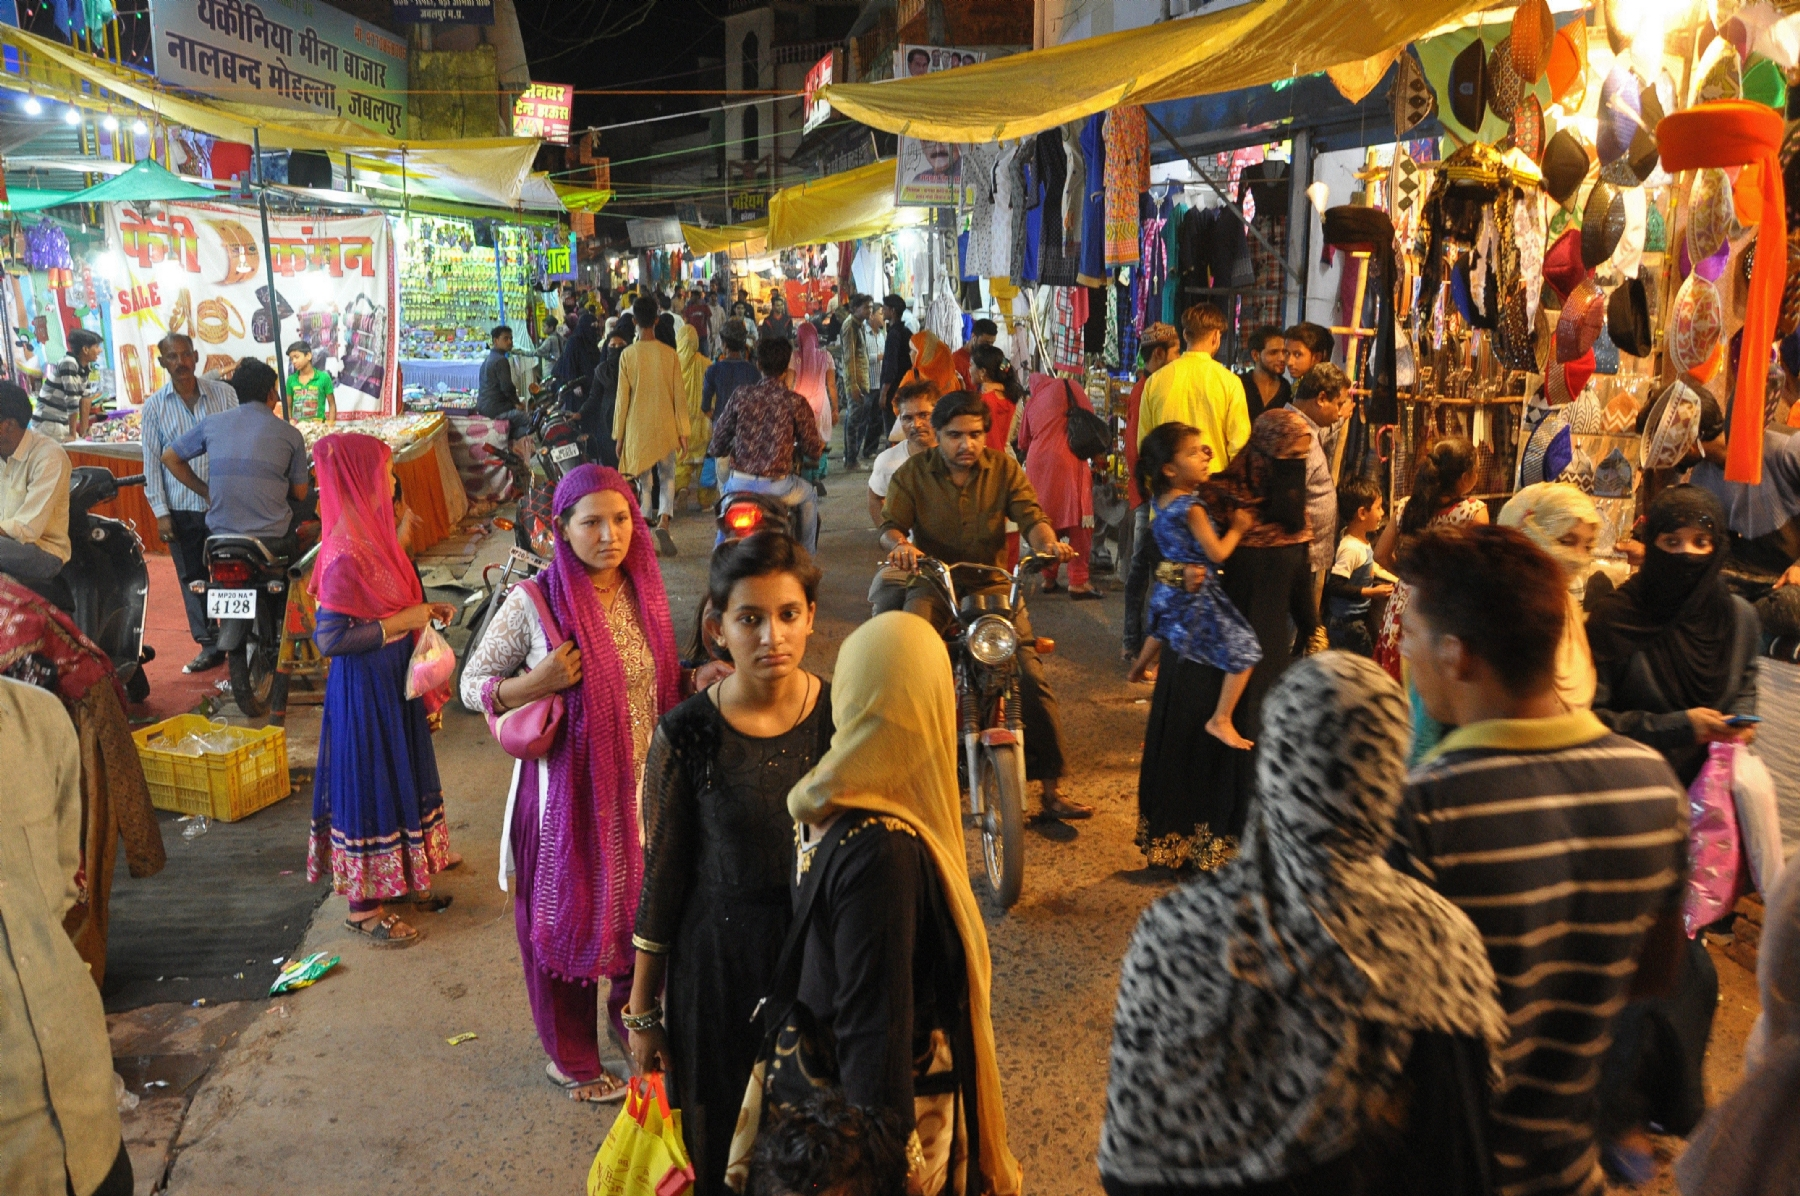 City twinkles as preparation for Eid commences